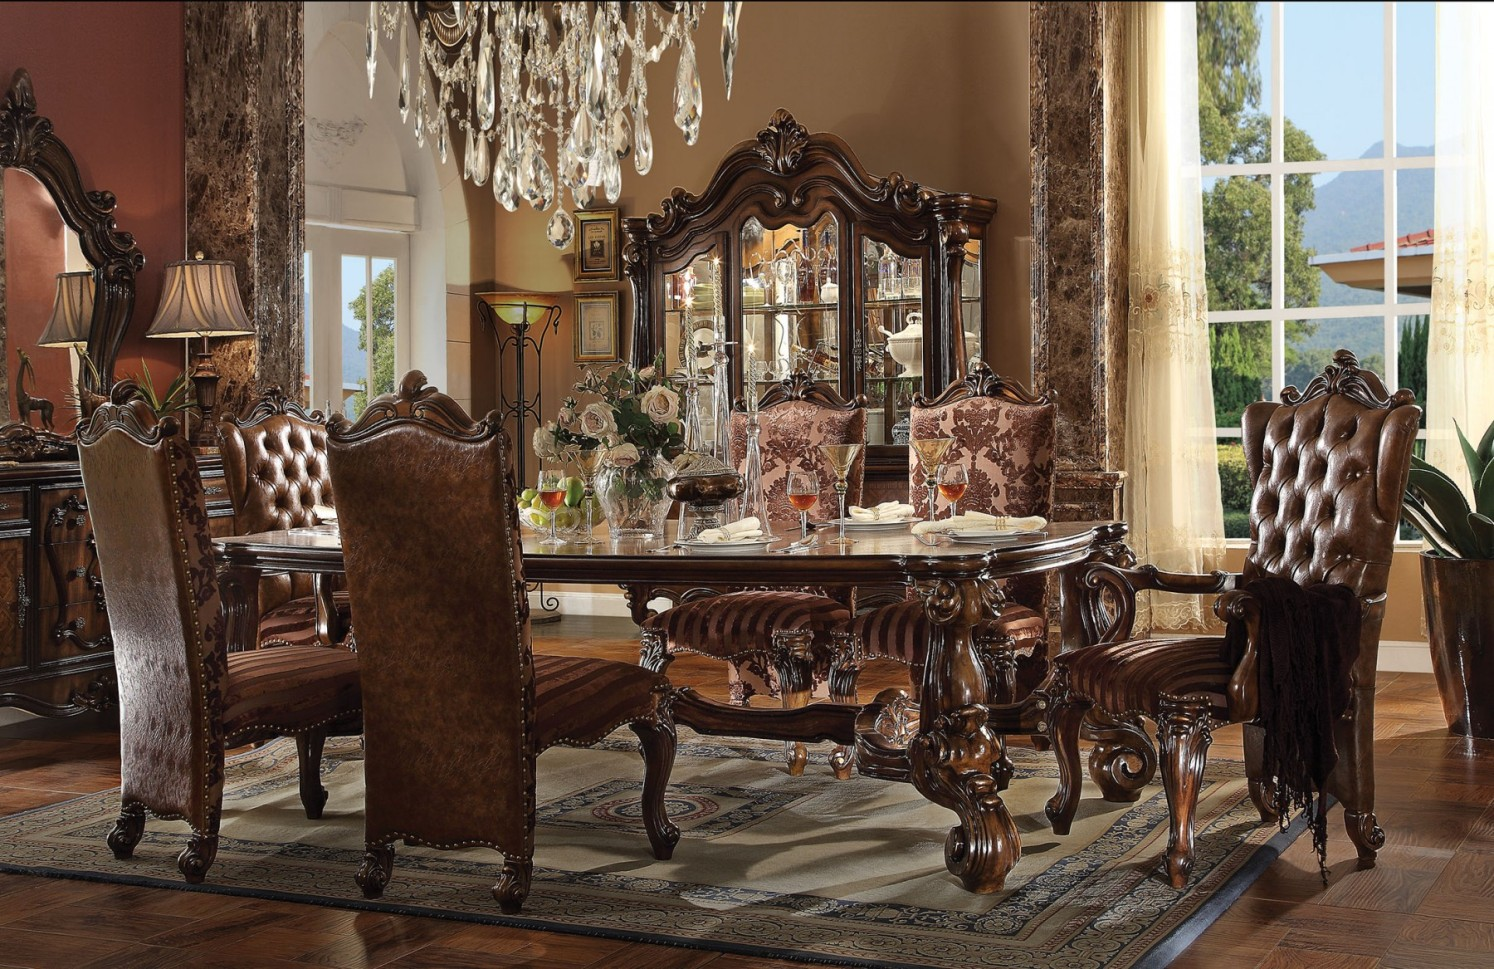 Formal dining room sets how elegance is made possible for Dining room furniture images